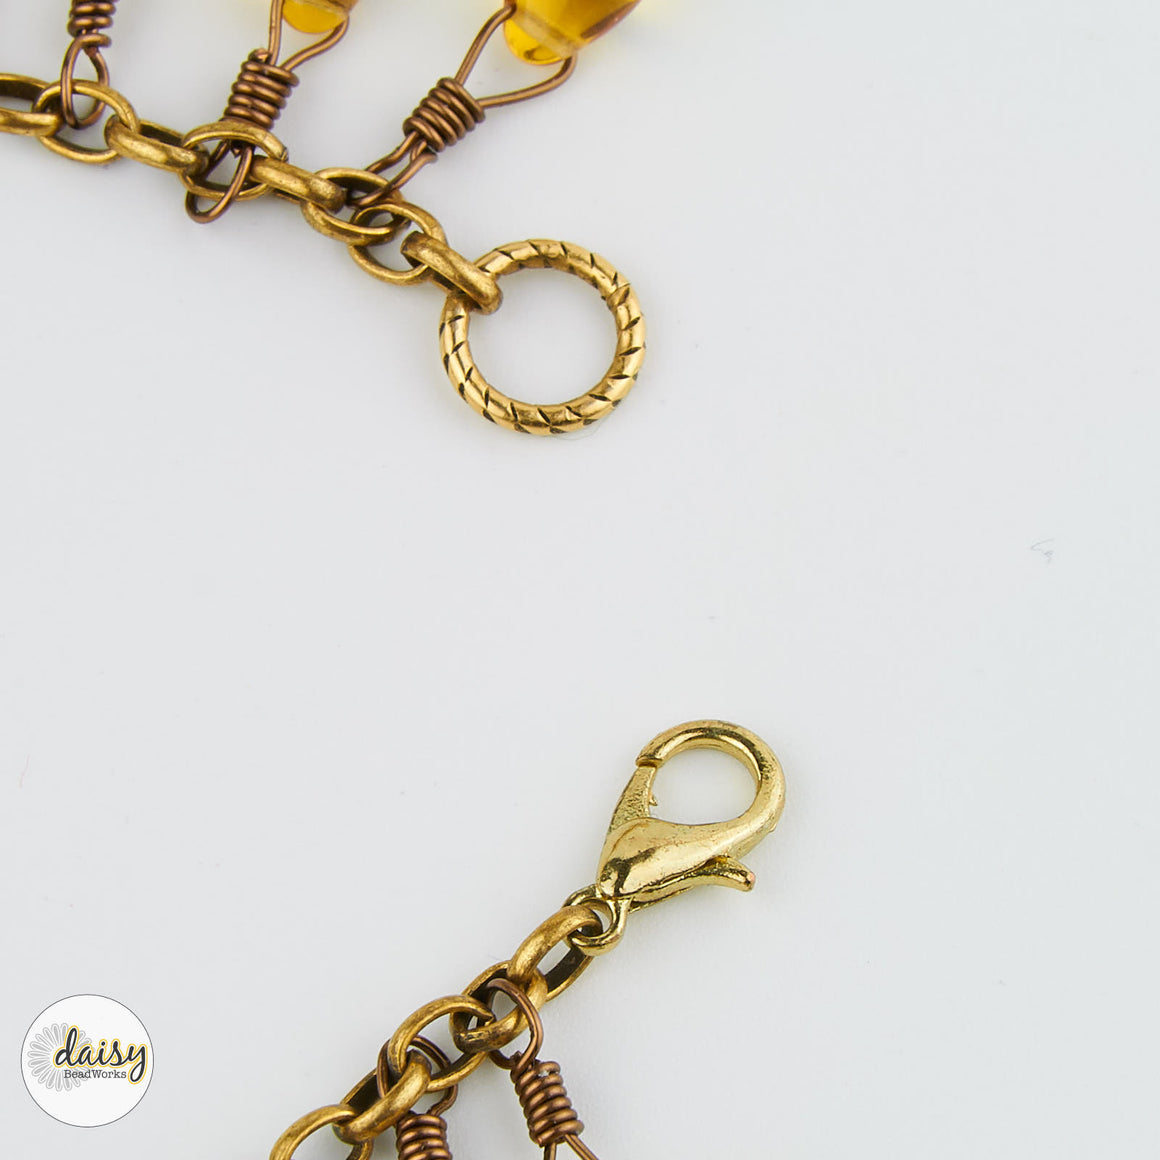 Honey Droplet Bracelet